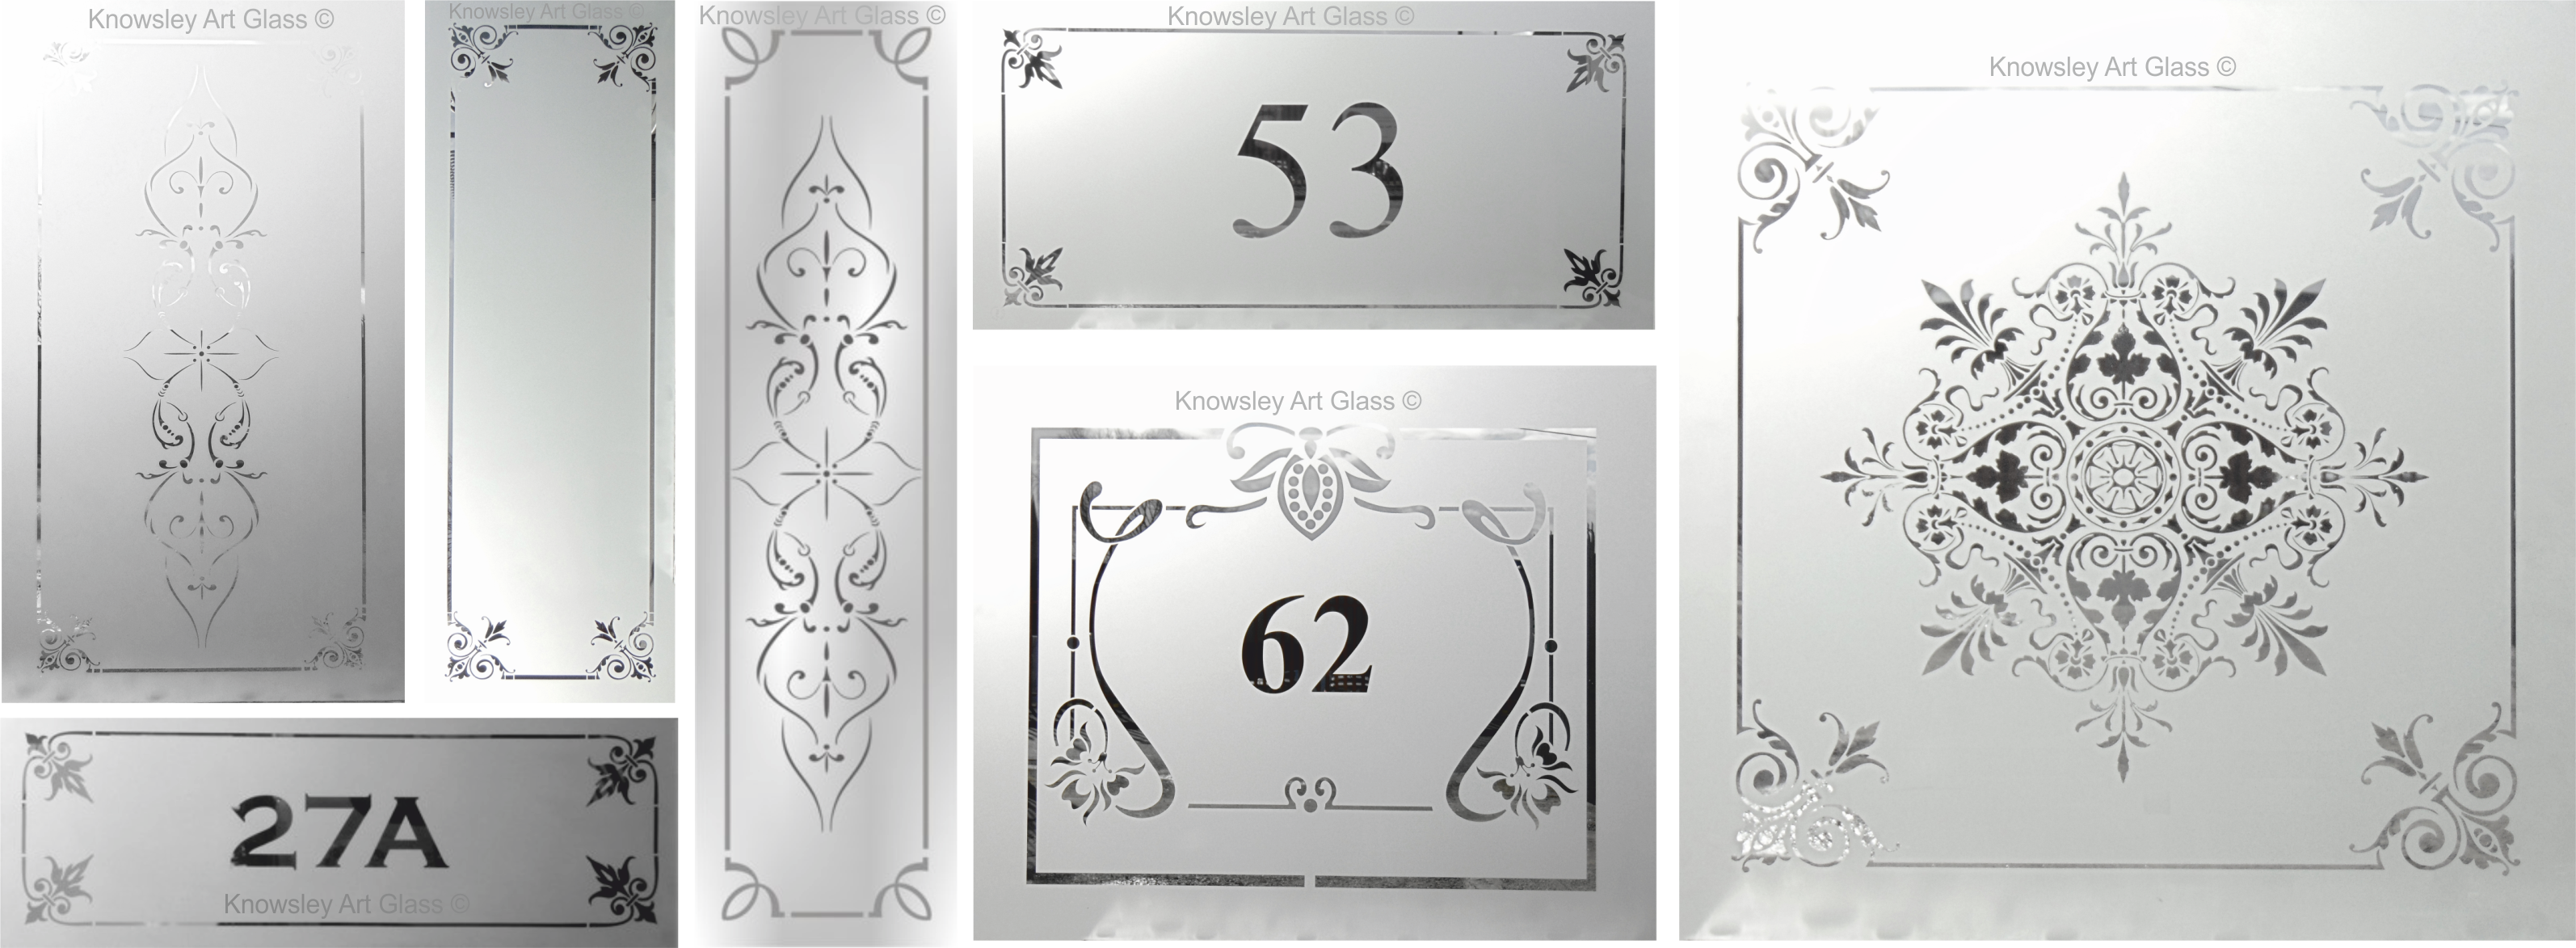 glass door numbers